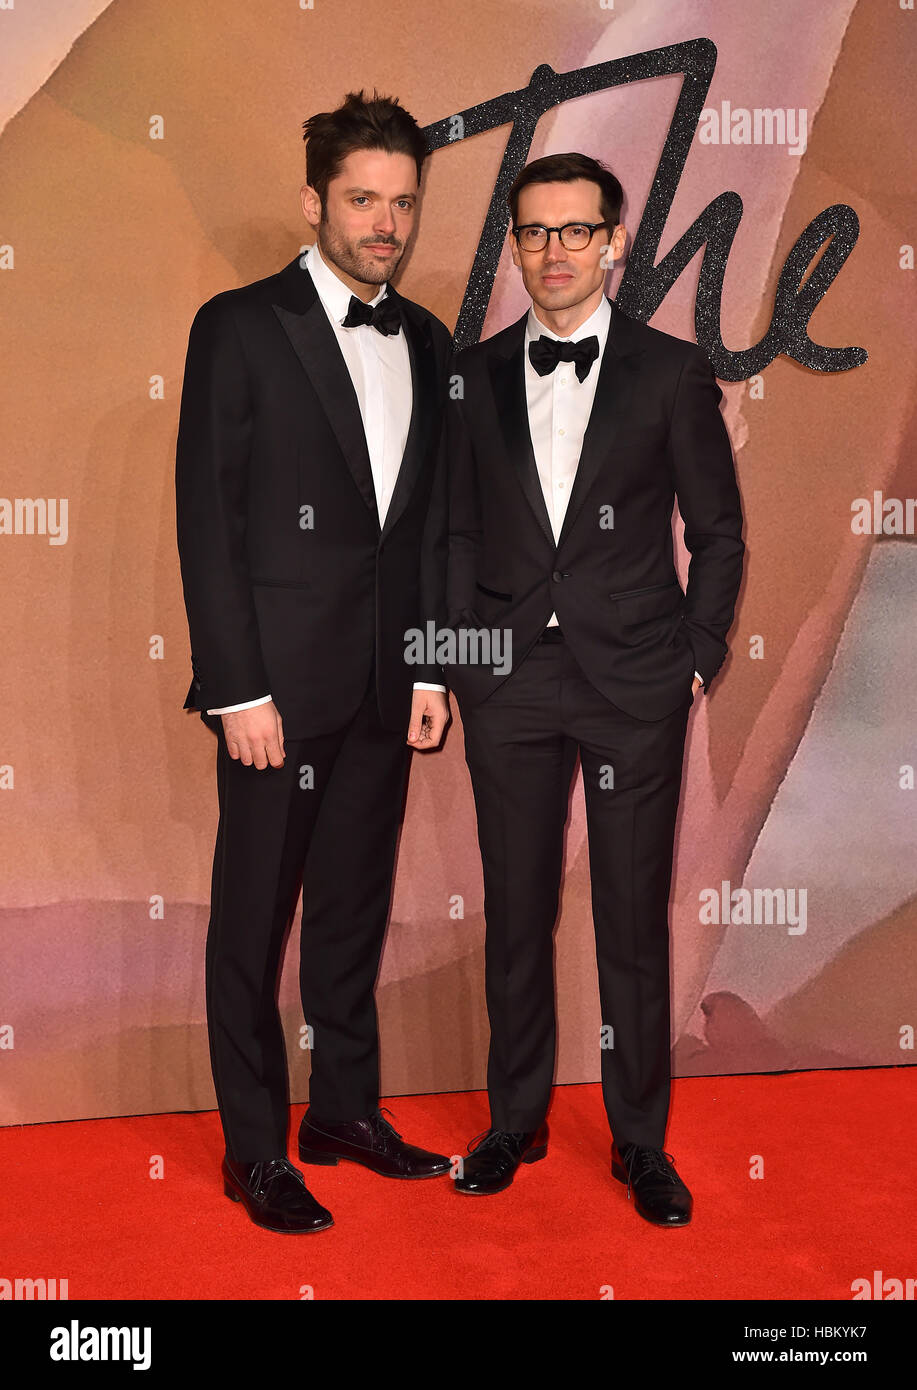 Guest and Erdem Moralioglu (right) attending The Fashion Awards 2016 at the Royal Albert Hall, London. PRESS ASSOCIATION - Stock Image